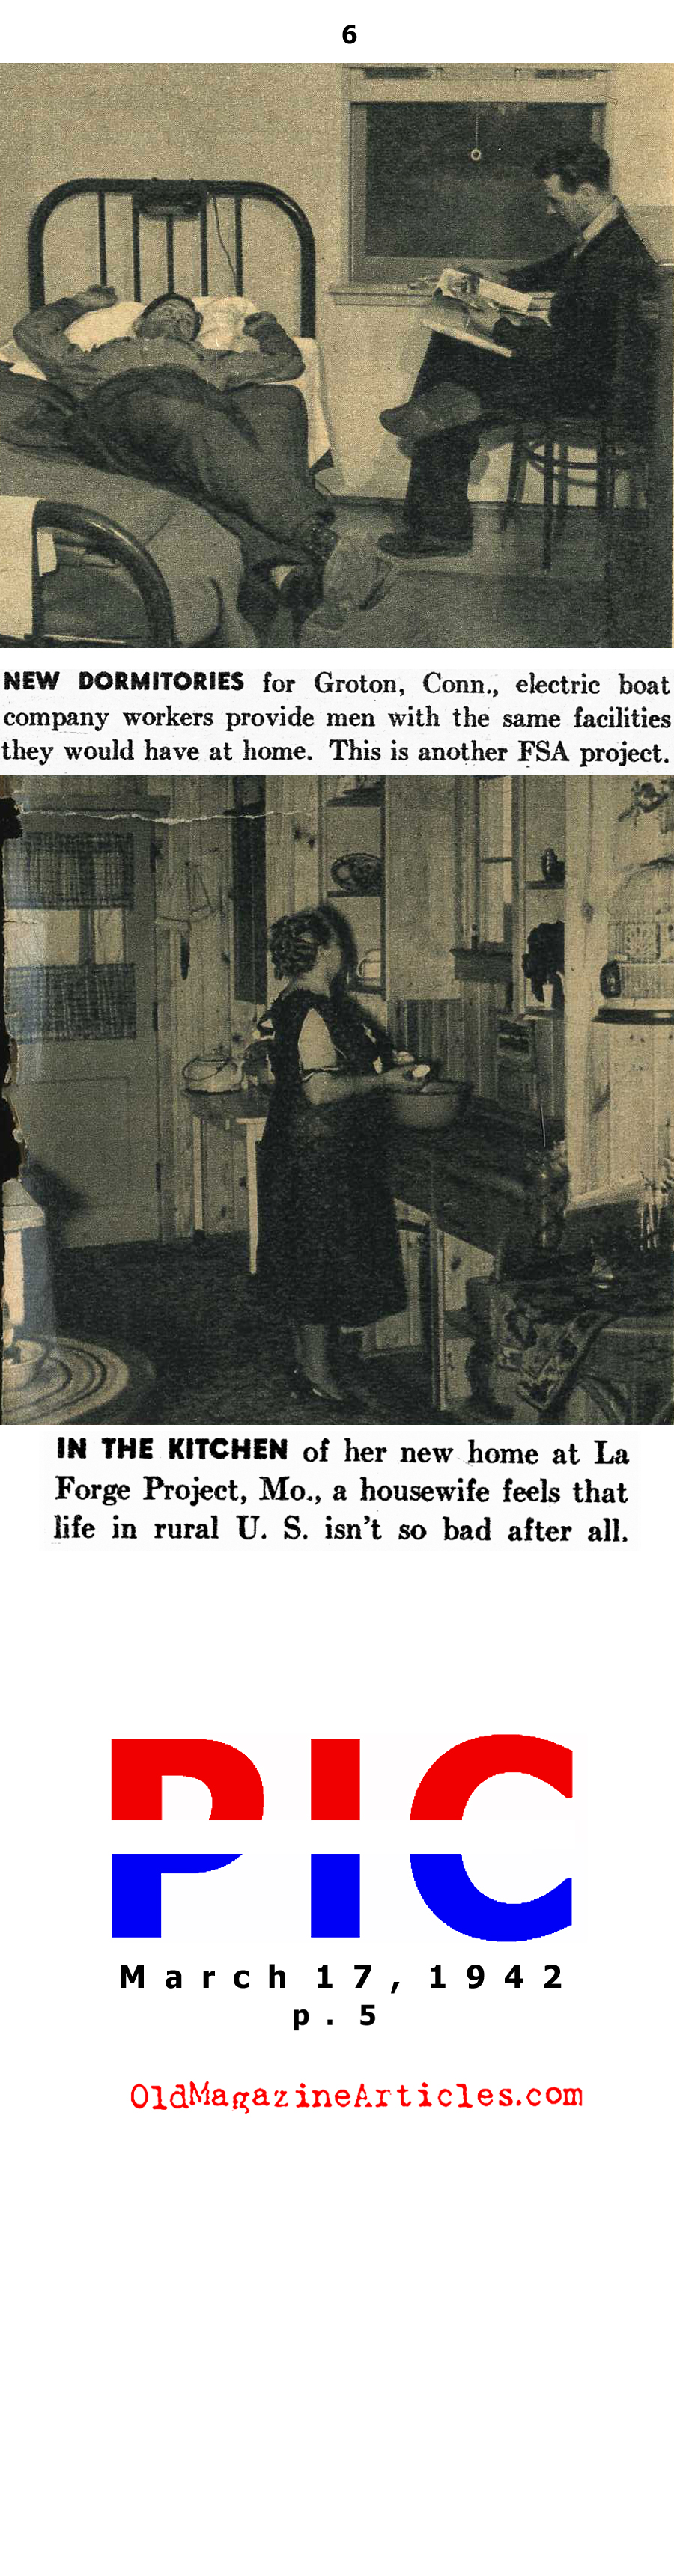 When the Depression Lingered Into the War Years (Pic Magazine, 1942)